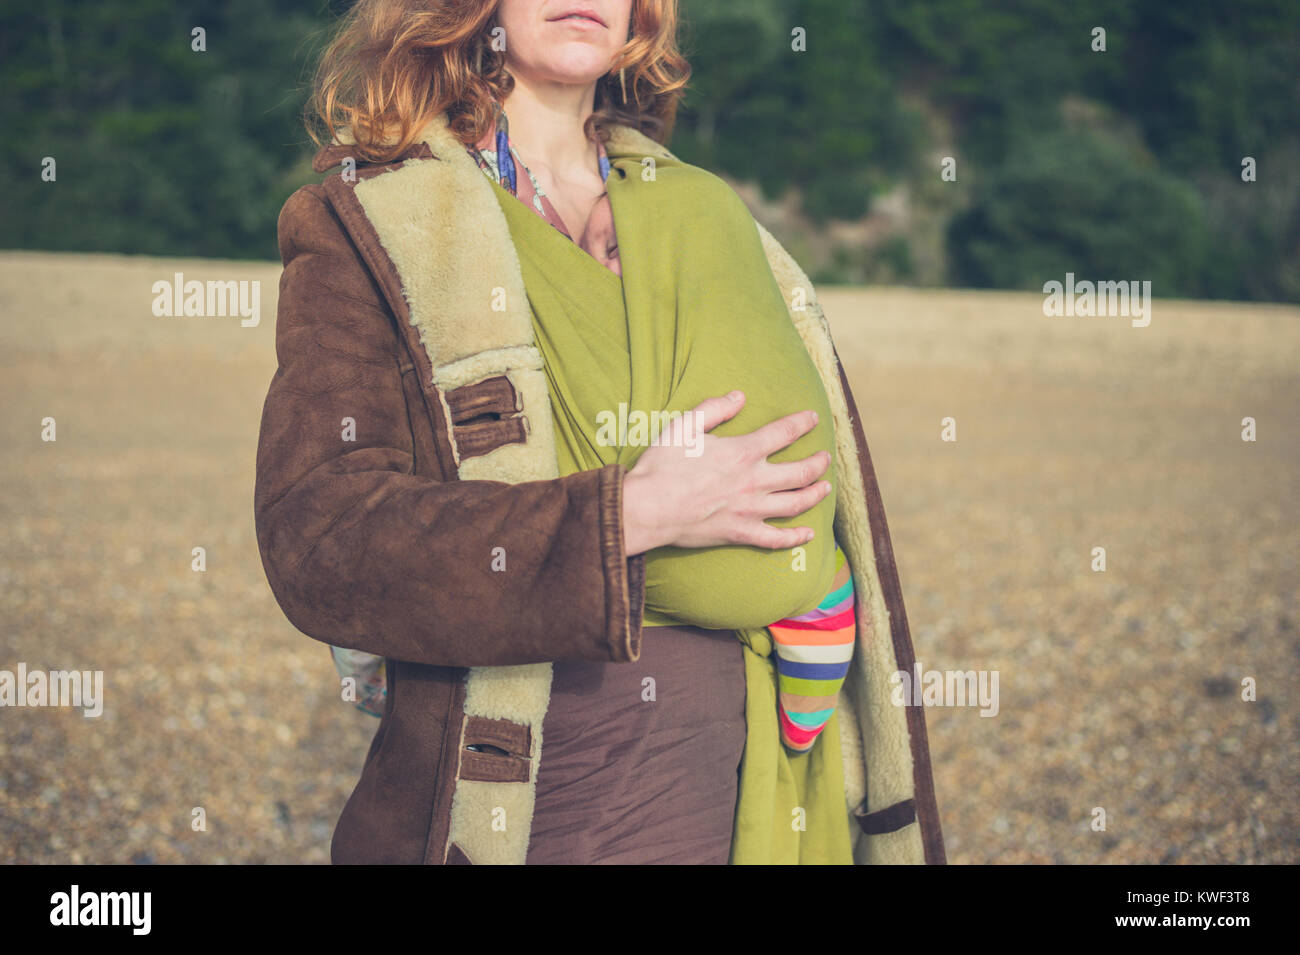 A young mother is standing on the beach with her baby in a sling on a winter day - Stock Image